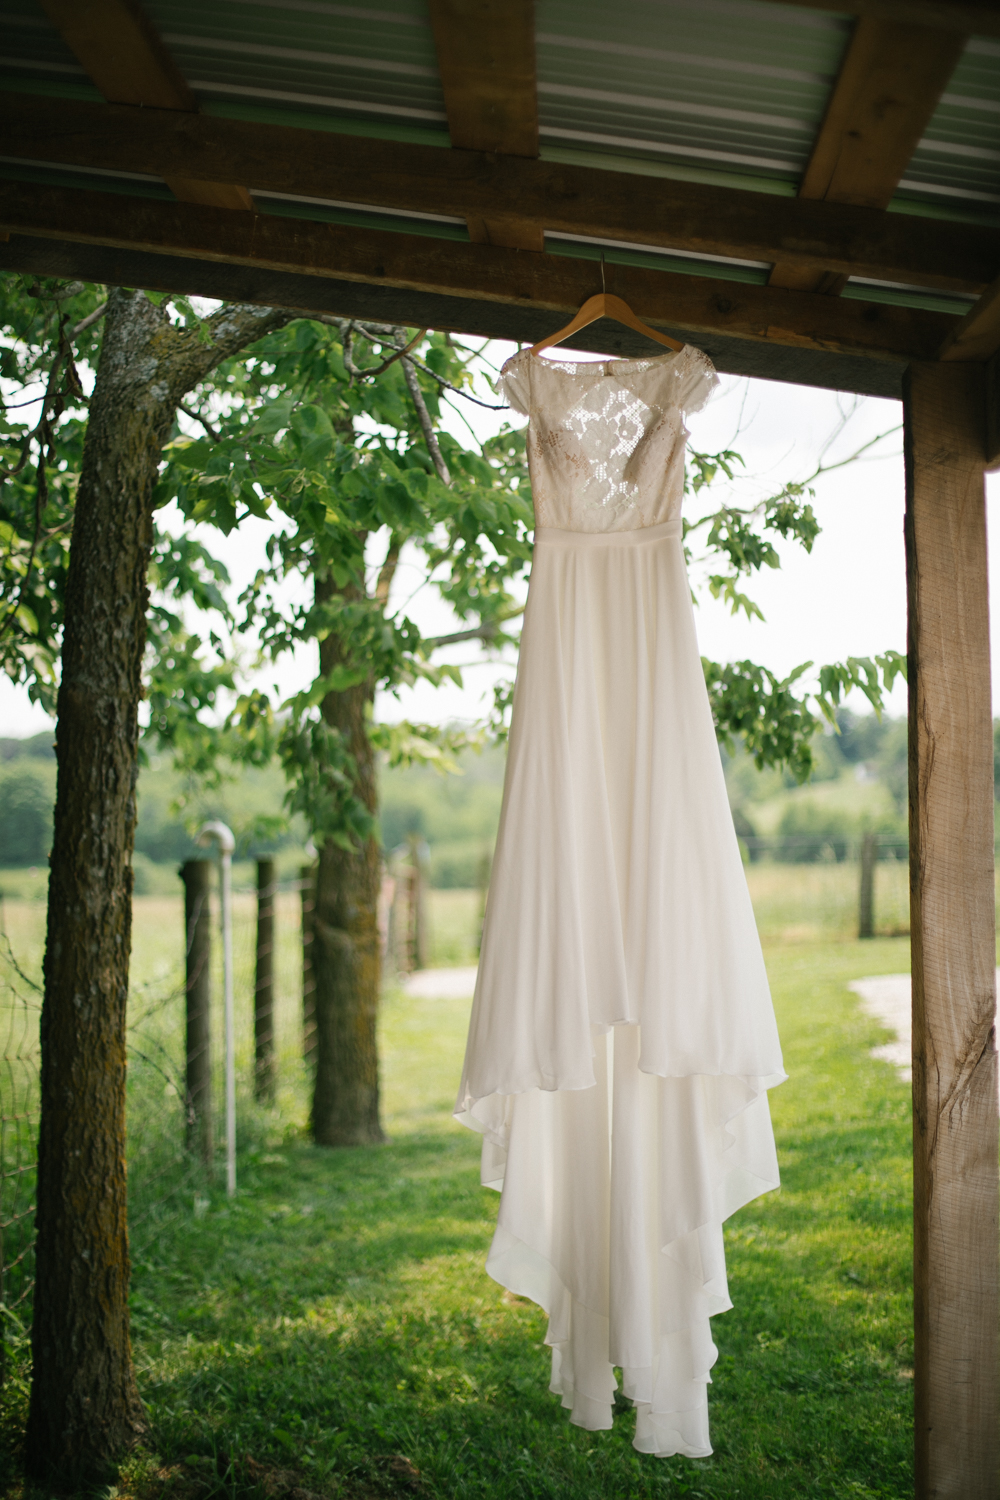 2019.06.01_CraskWedding_Starks-4.jpg